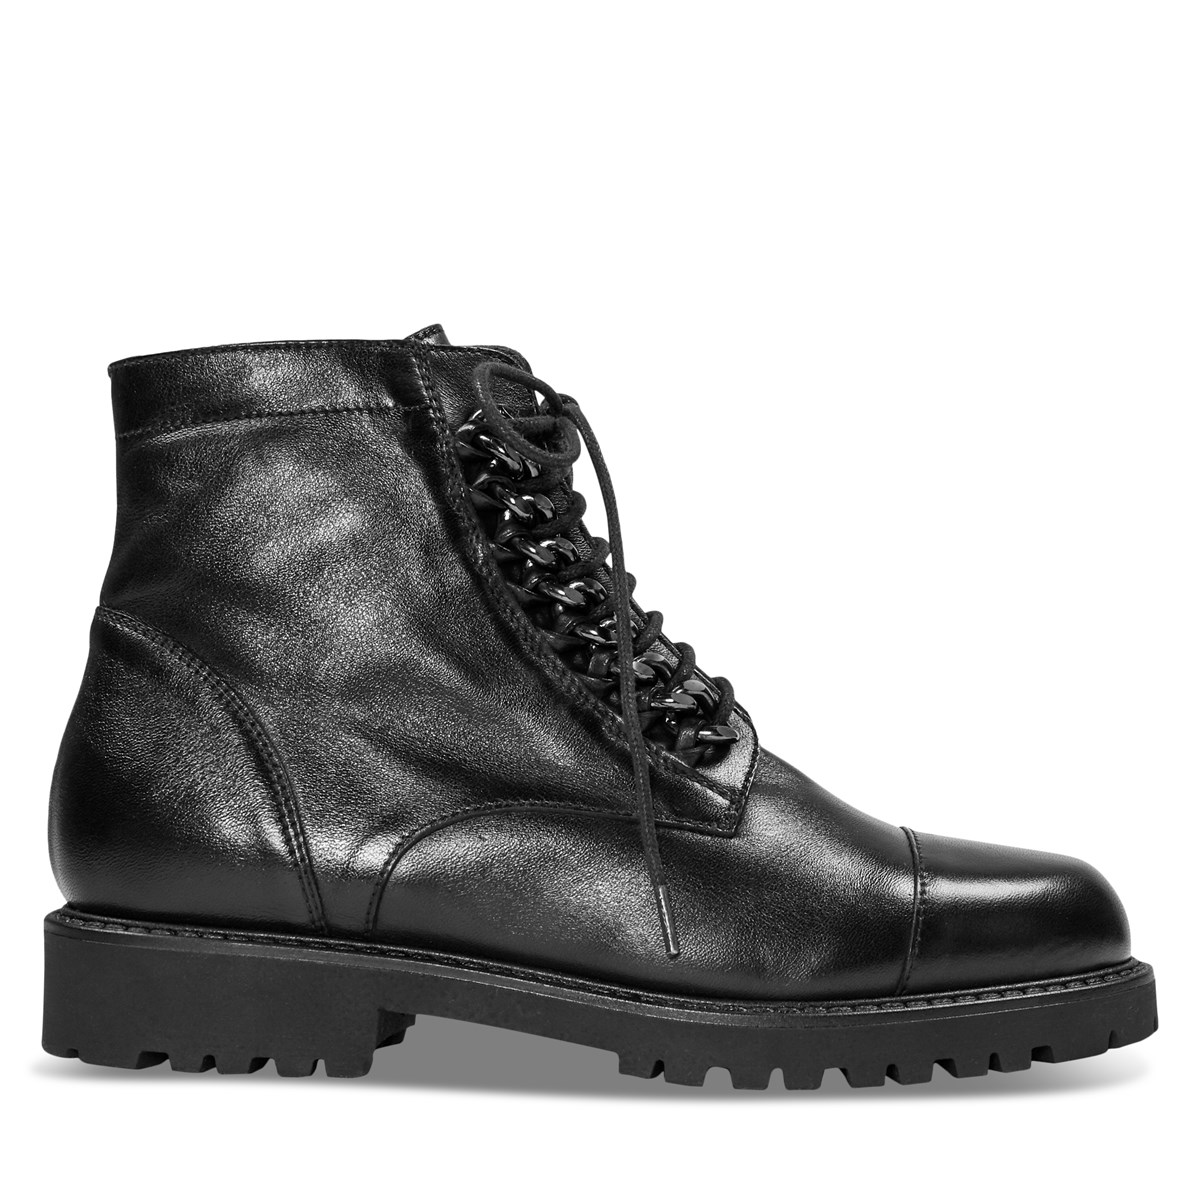 Women's Kaia Lace-Up Boots in Black